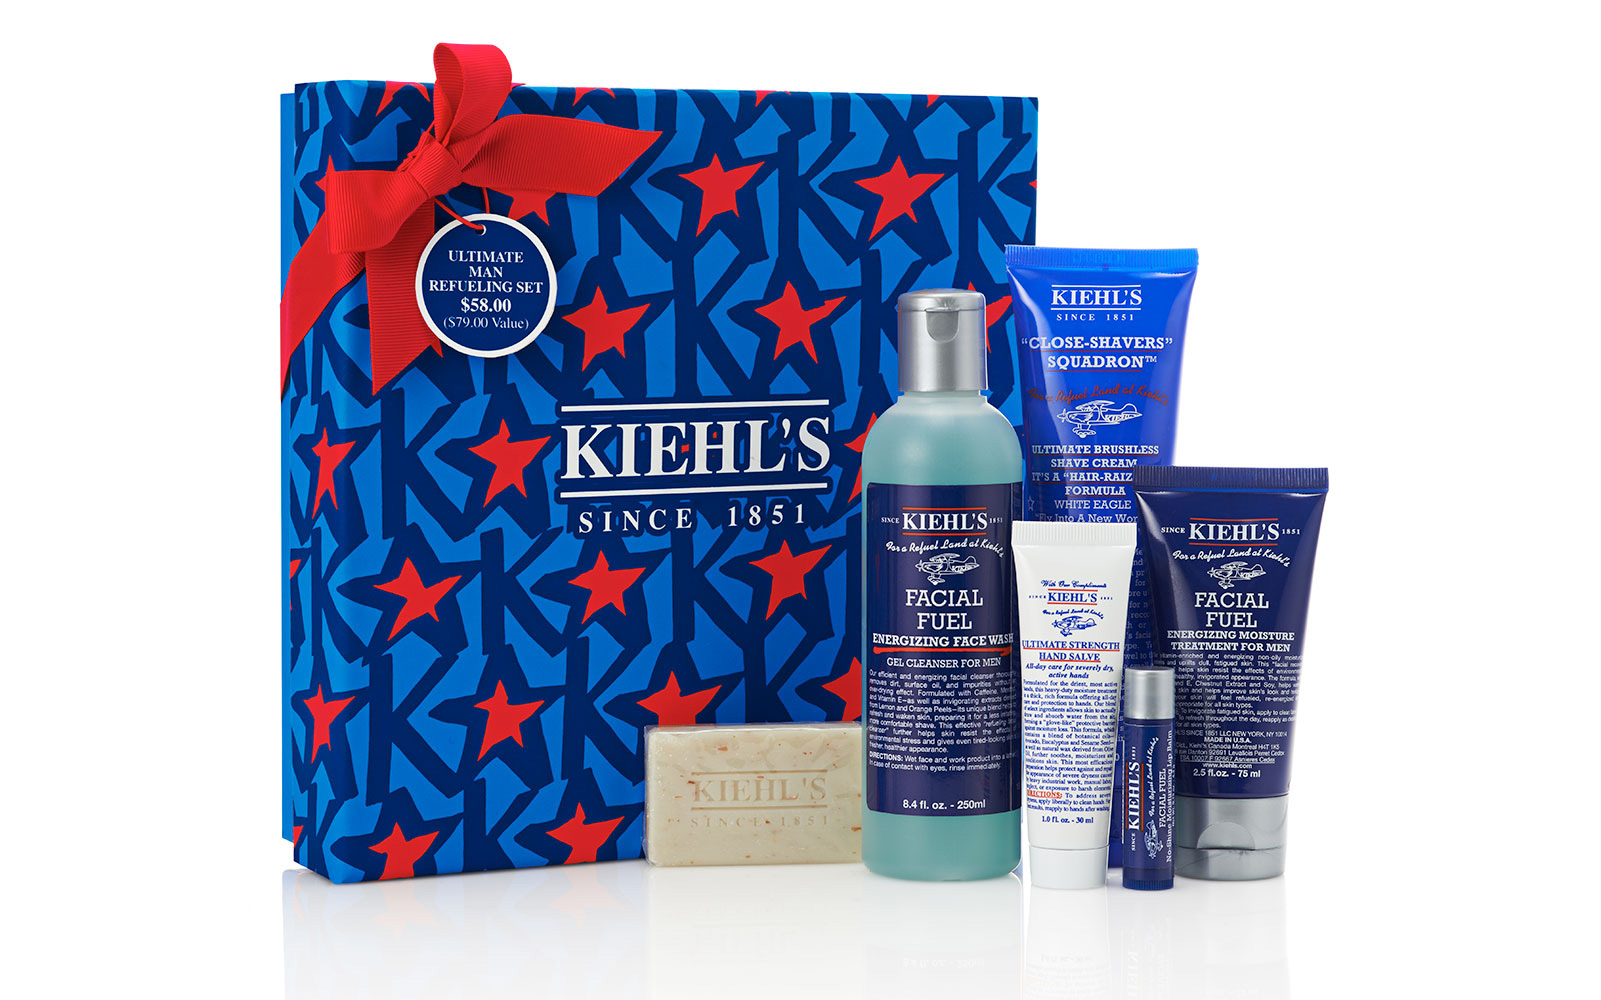 Gallery images and information: Kiehls Men